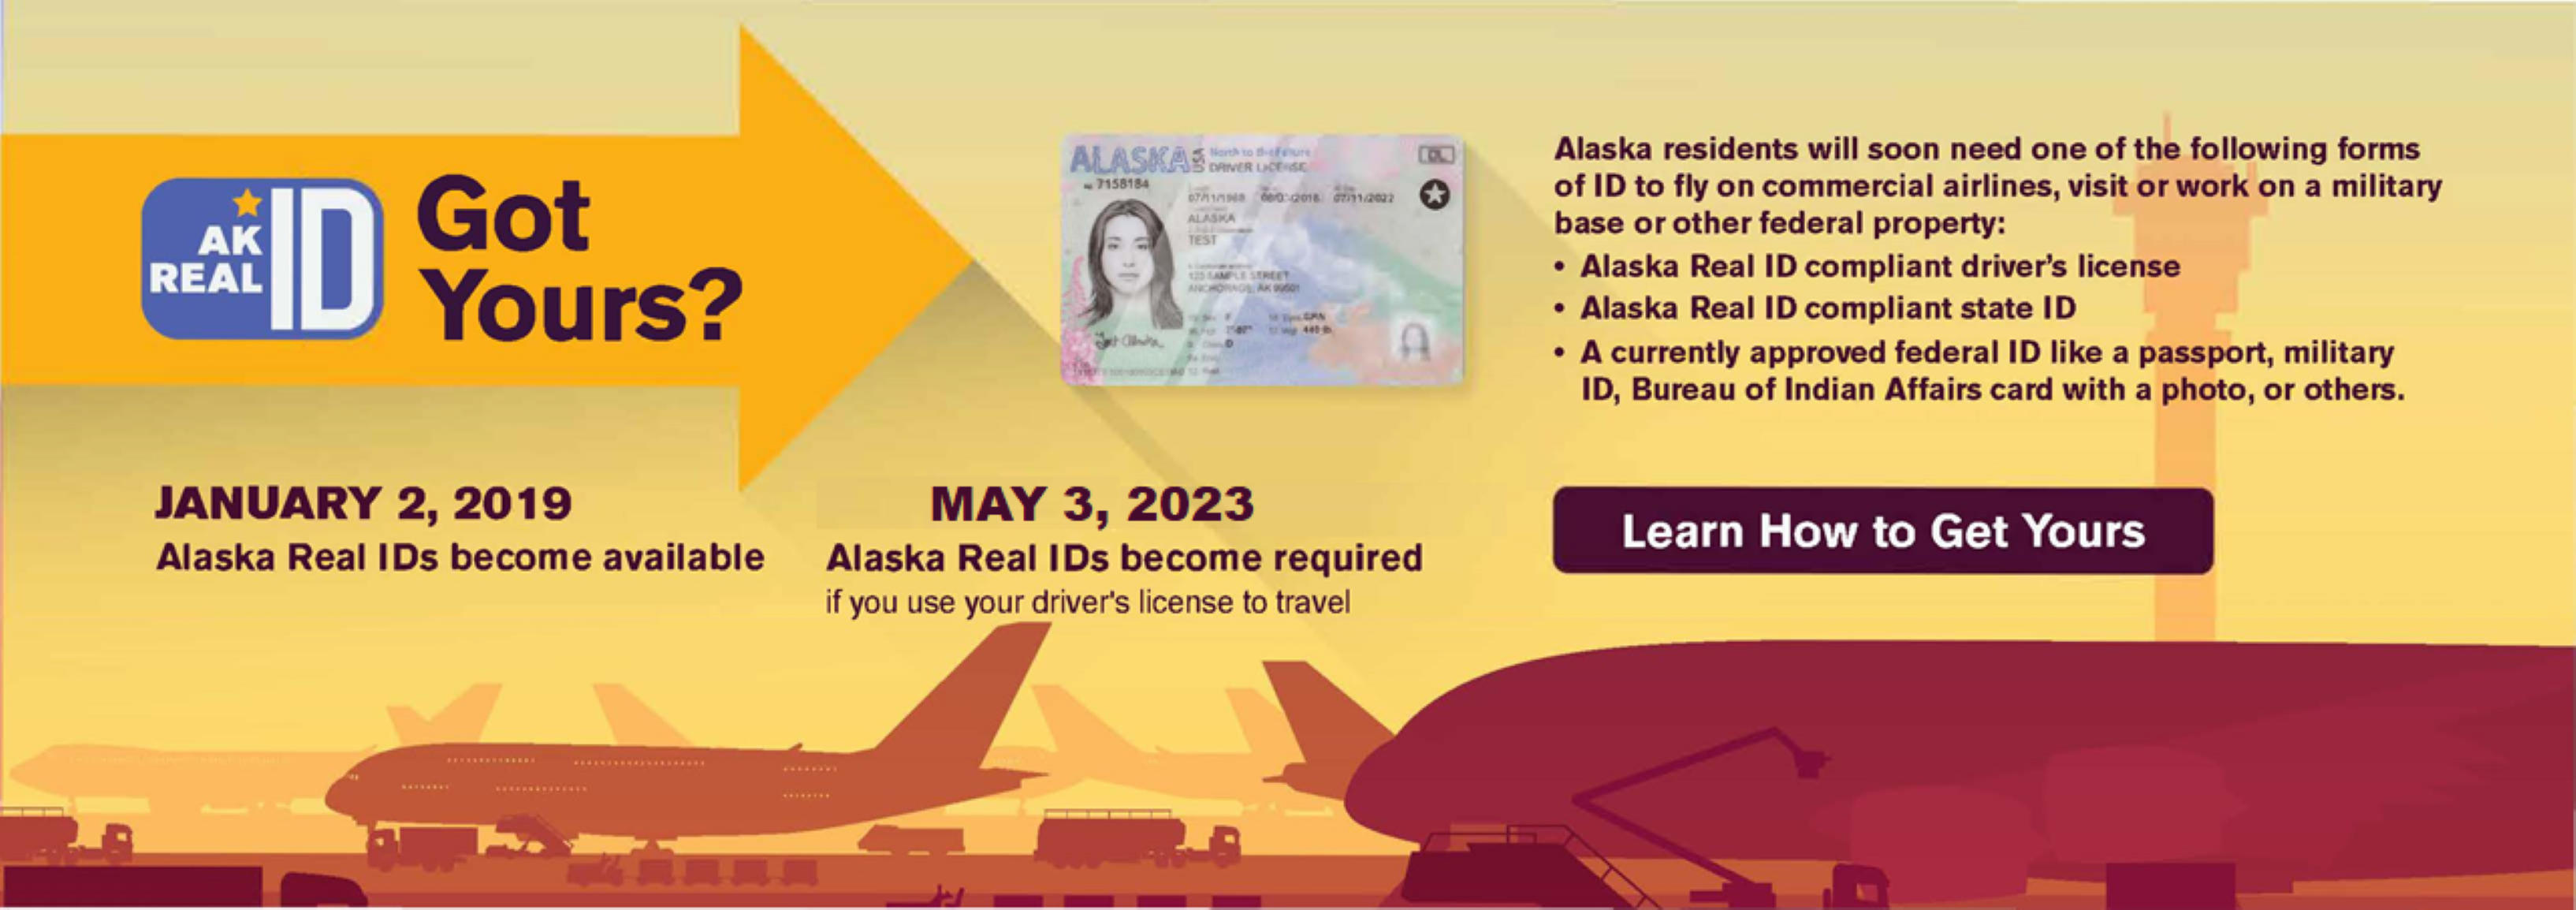 REAL ID Graphic